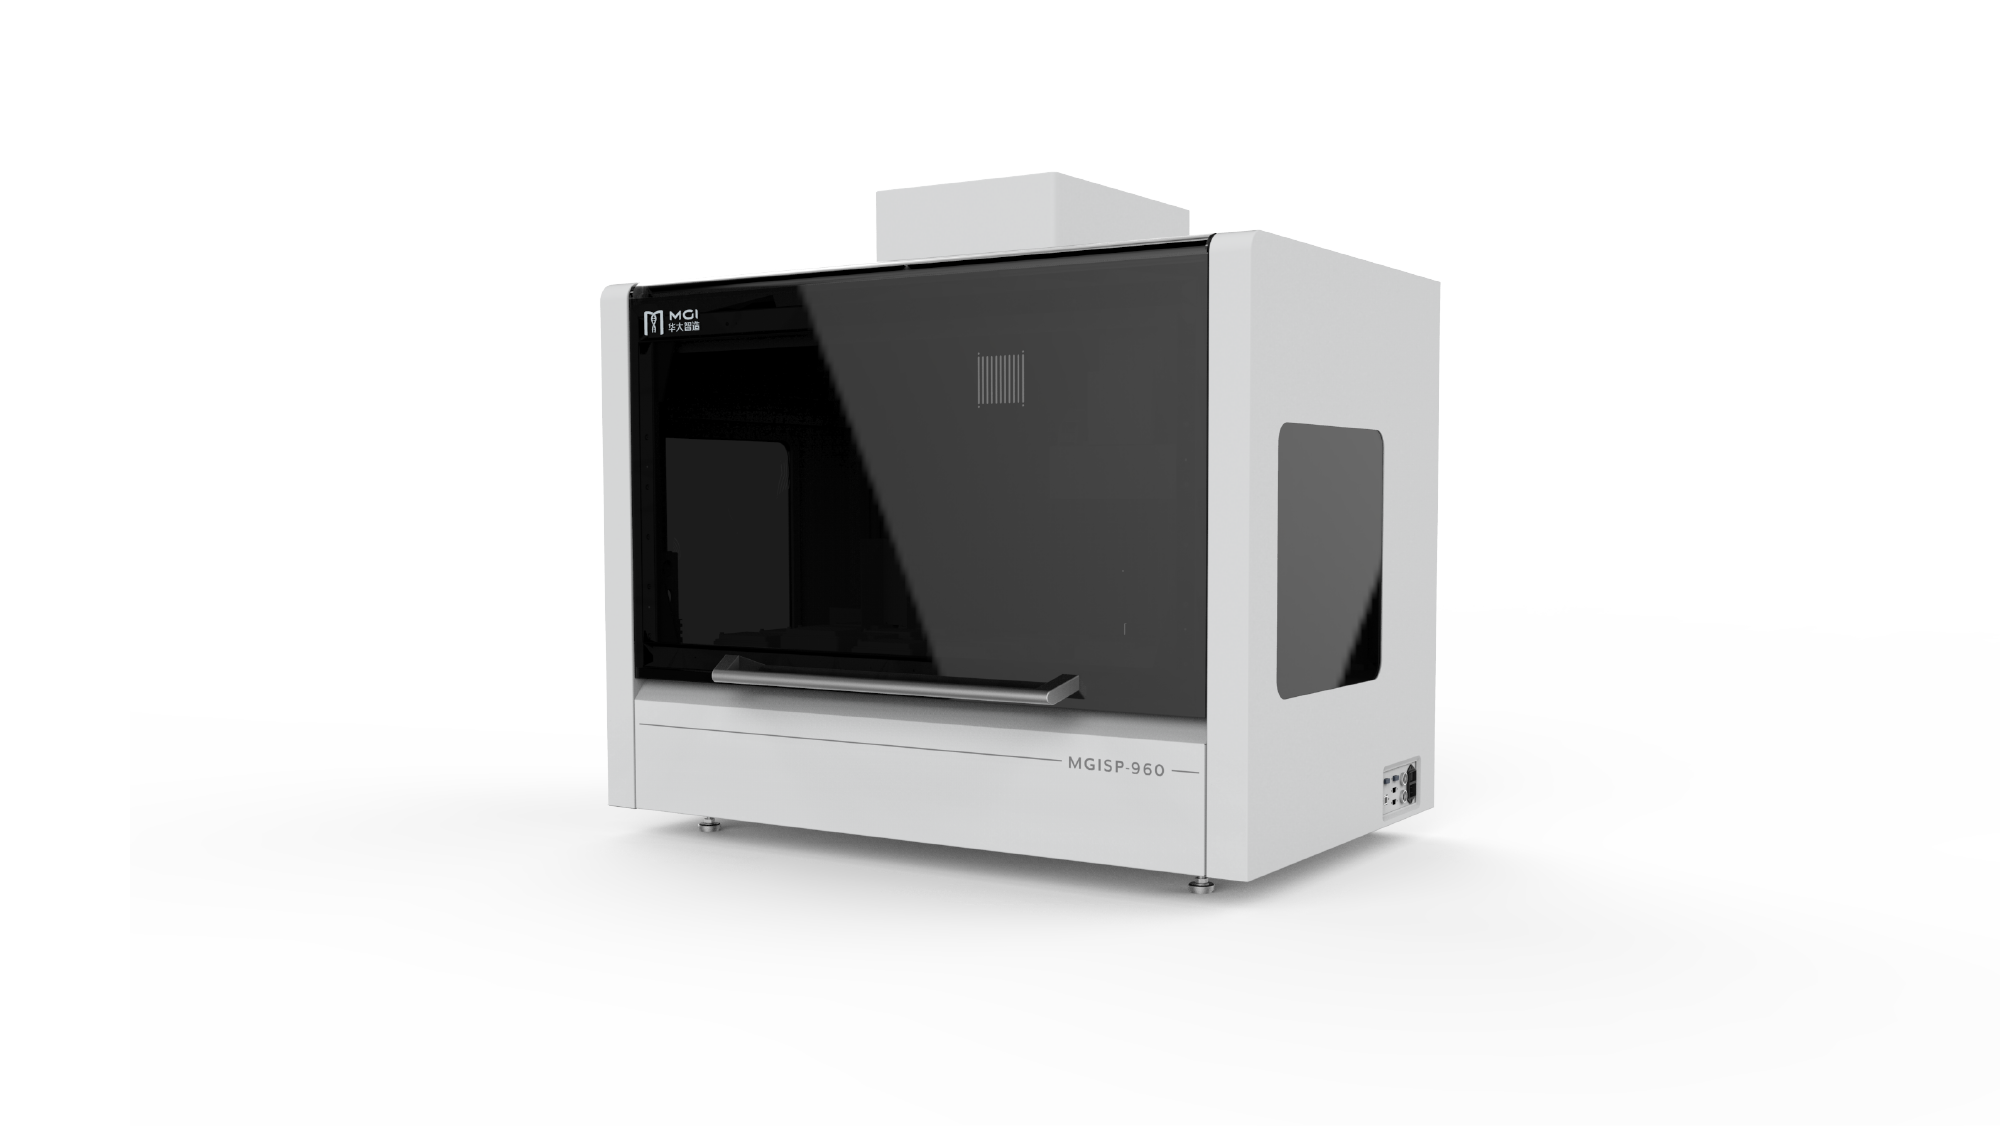 MGISP-960 High-throughput Automated Sample Preparation System